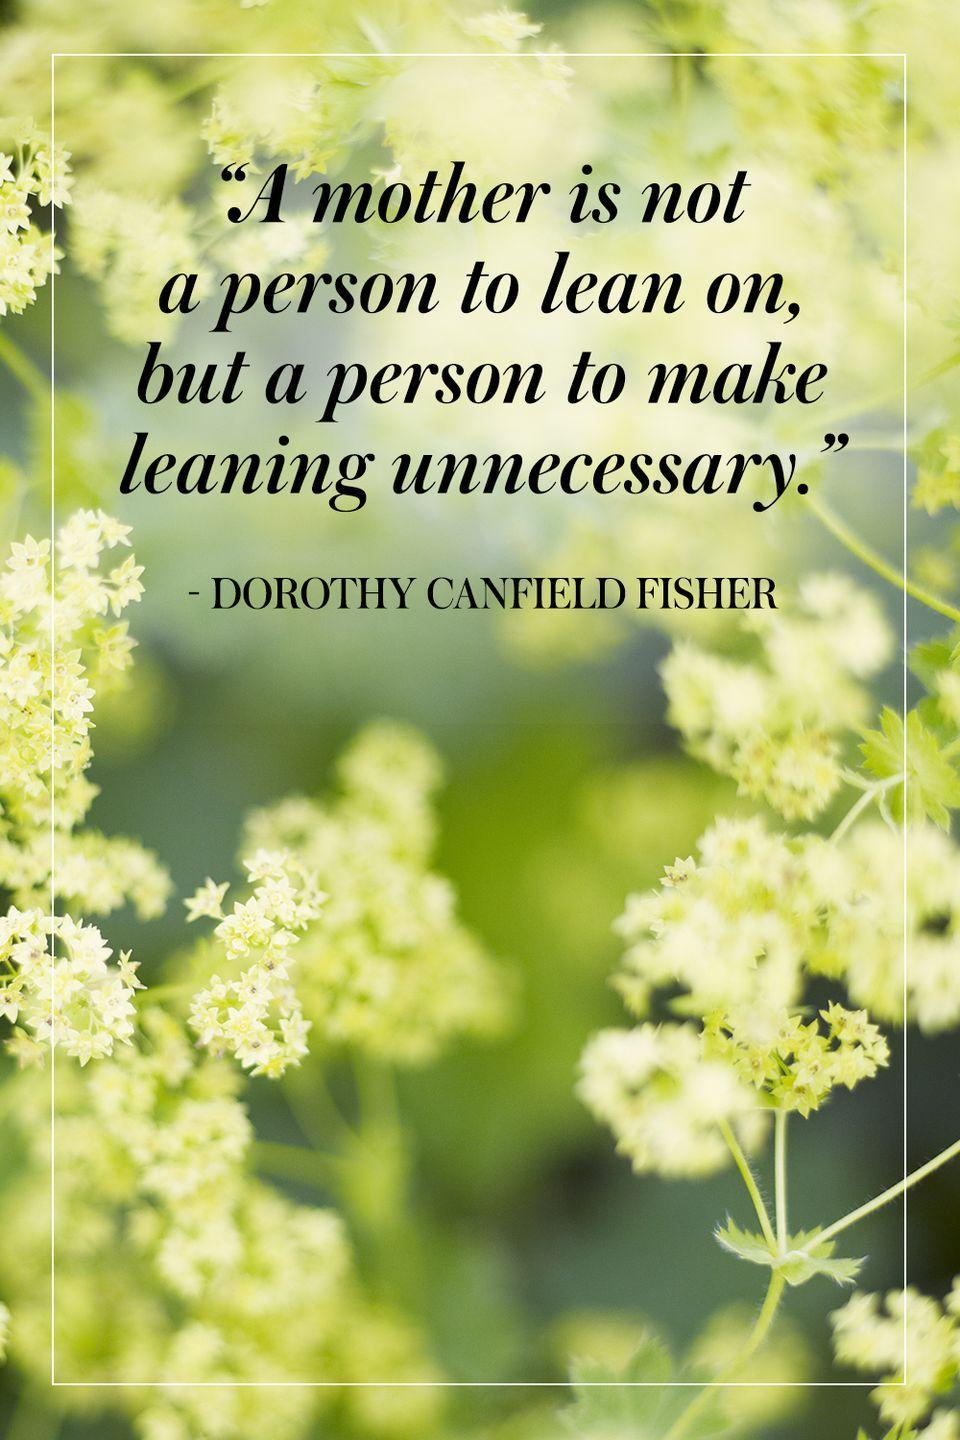 """<p>""""A mother is not a person to lean on, but a person to make leaning unnecessary.""""</p><p>- Dorothy Canfield Fisher</p>"""